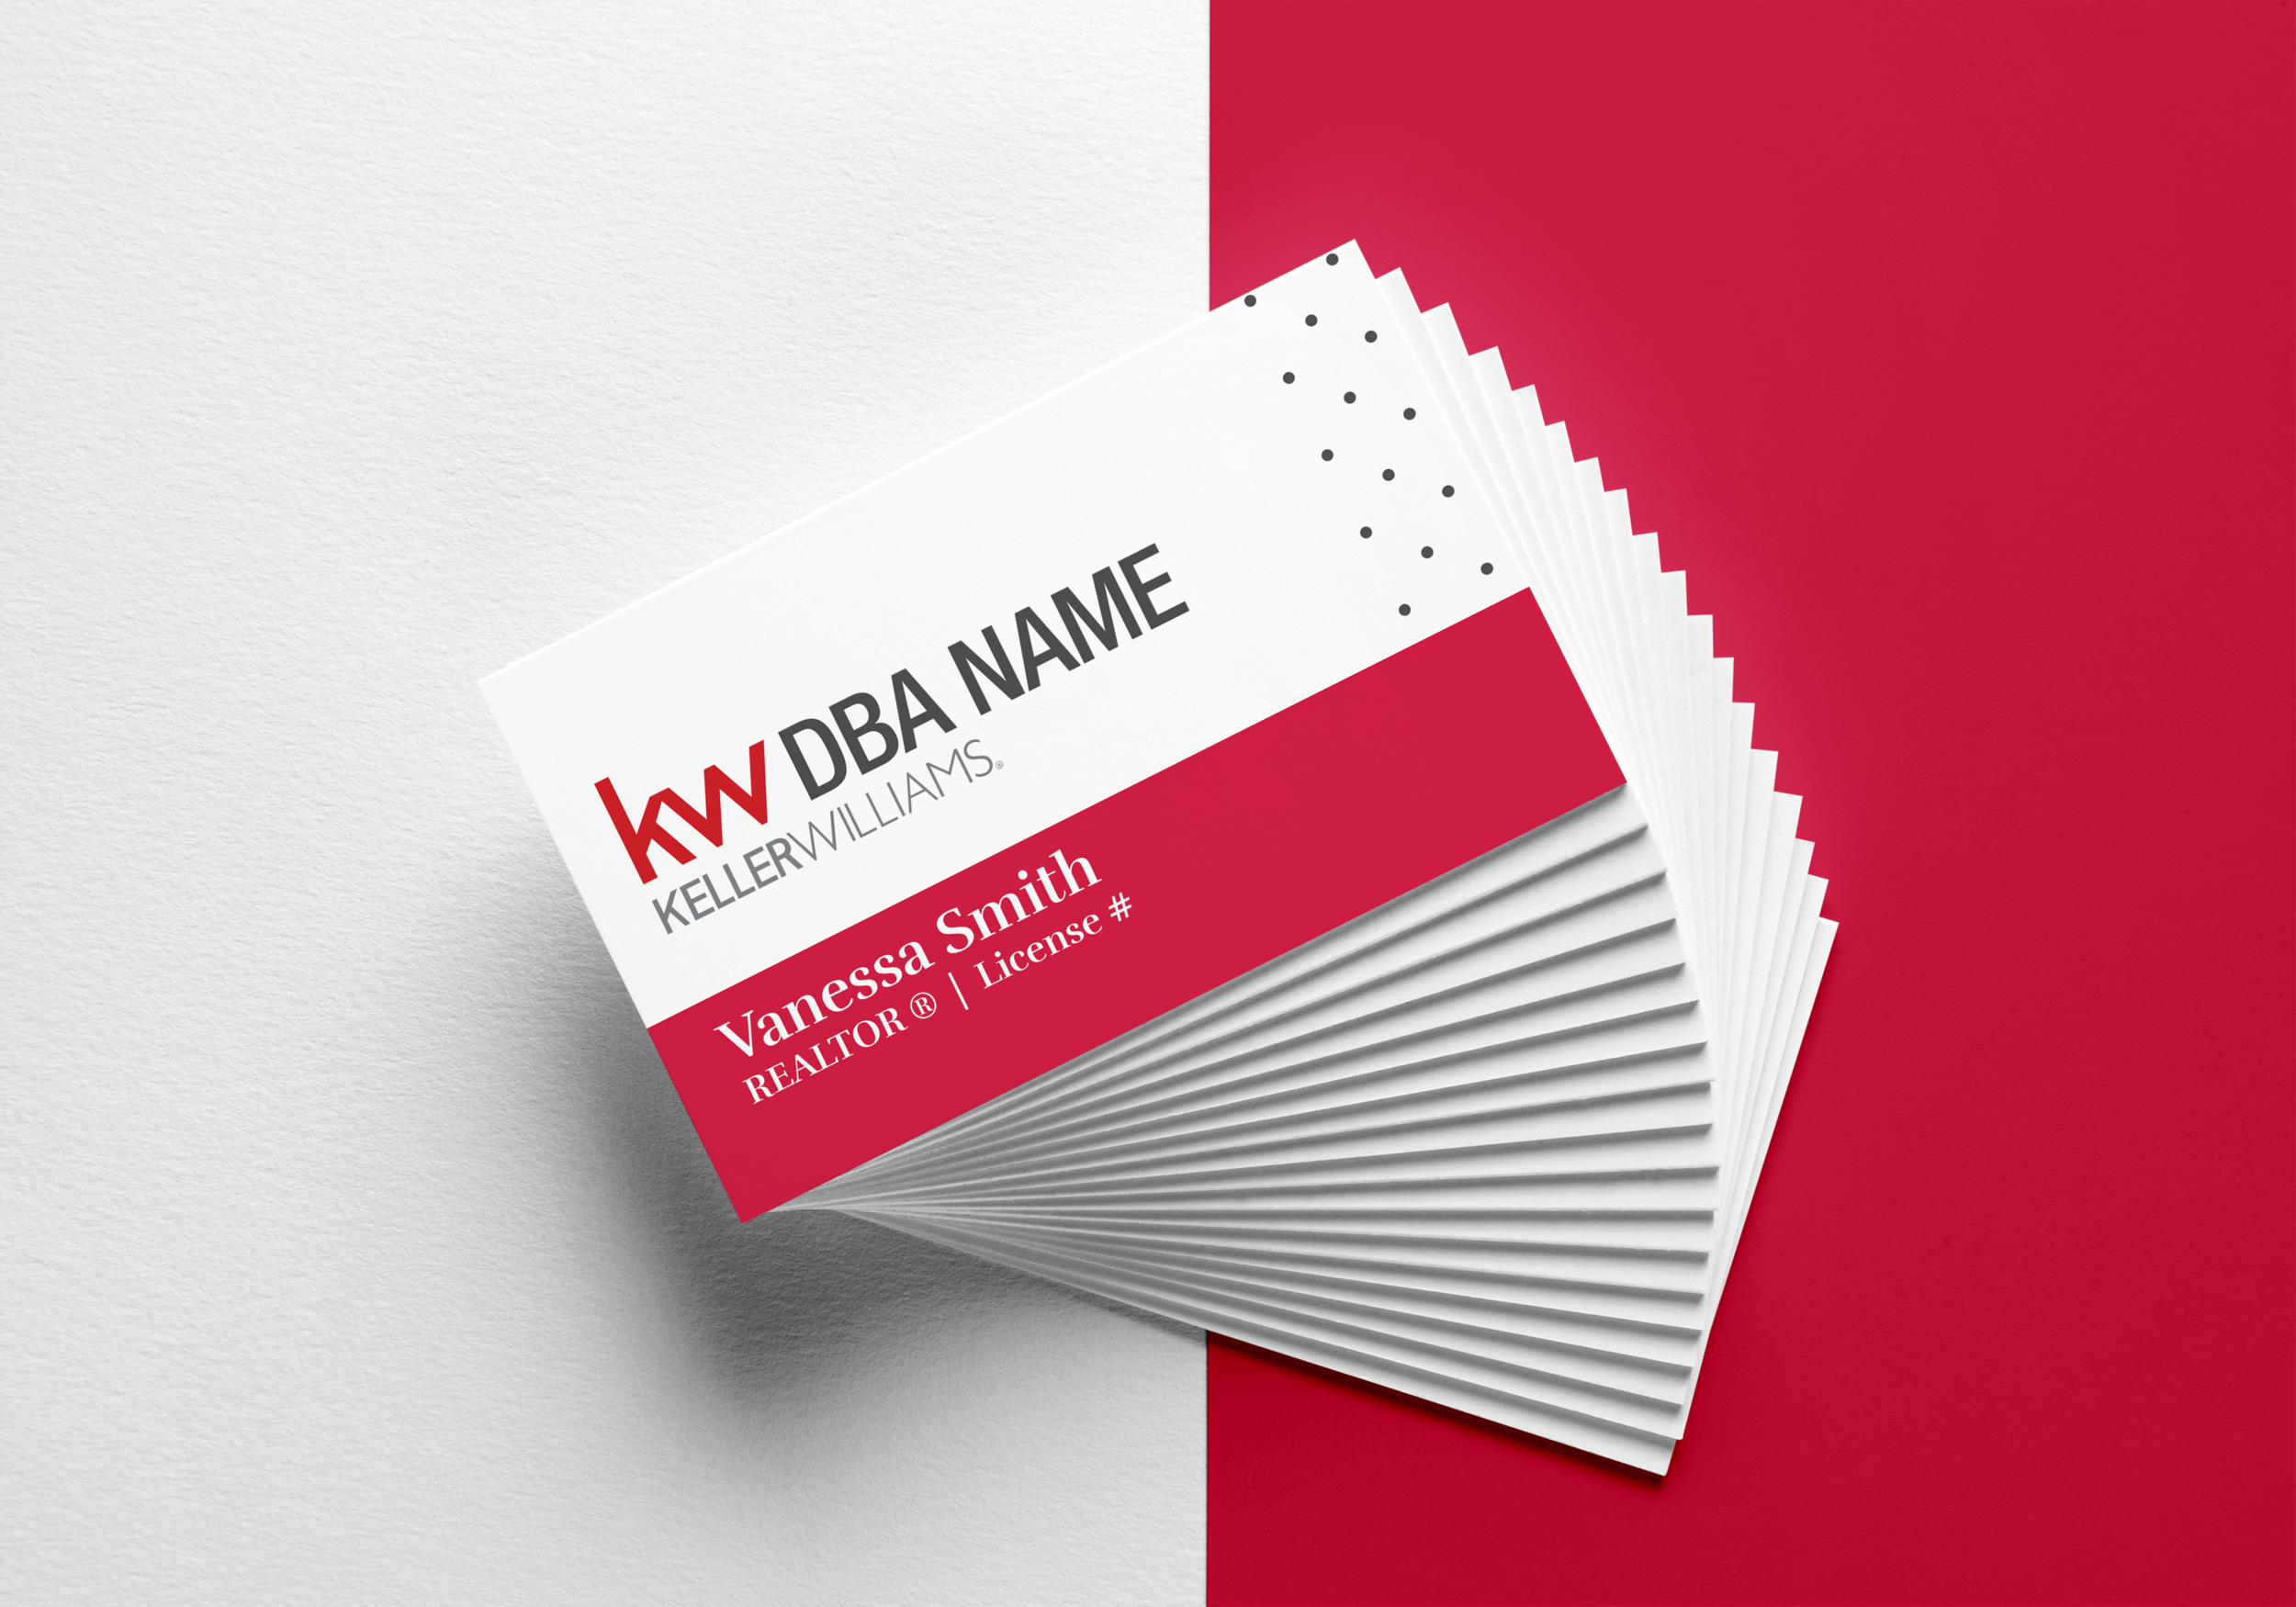 One of the business card options I created for Keller Williams' agents to choose from.